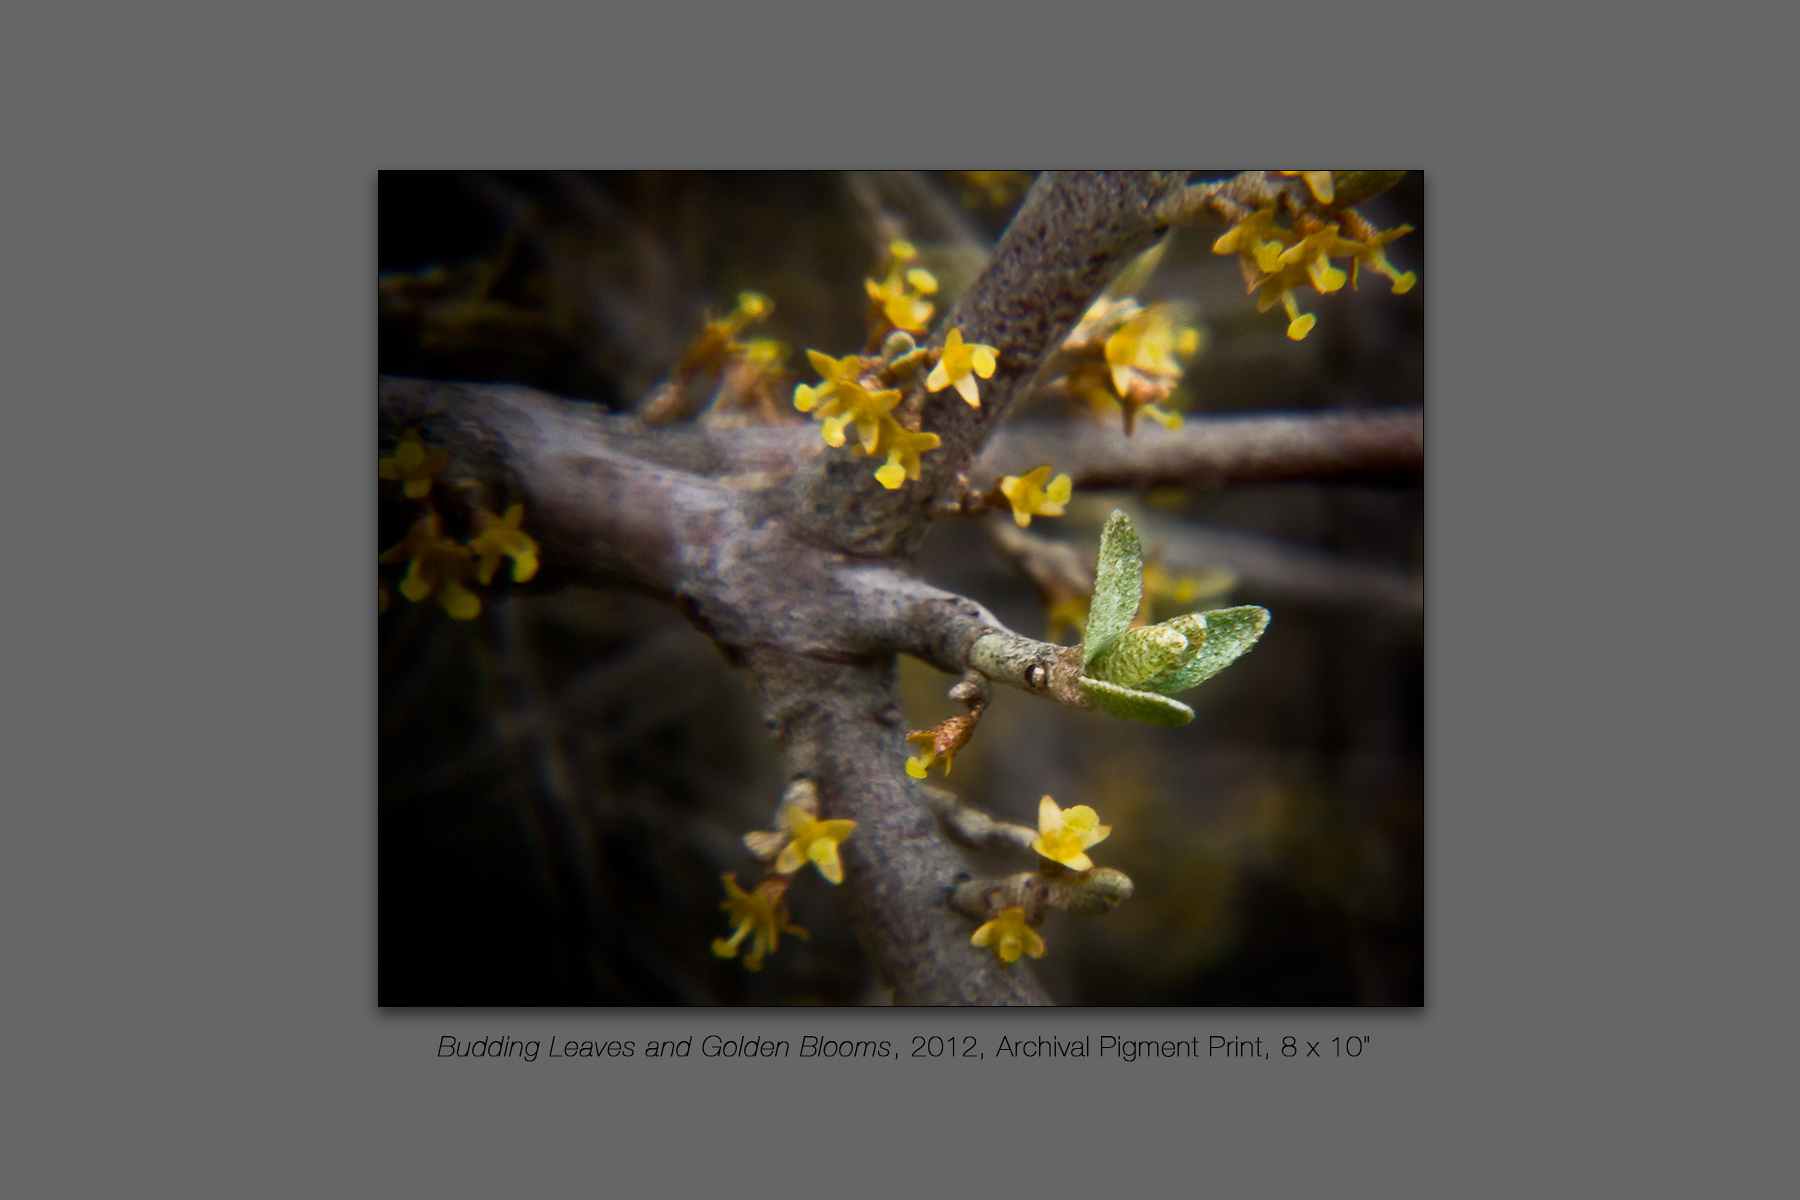 Budding Leaves and Golden Blooms, 2012